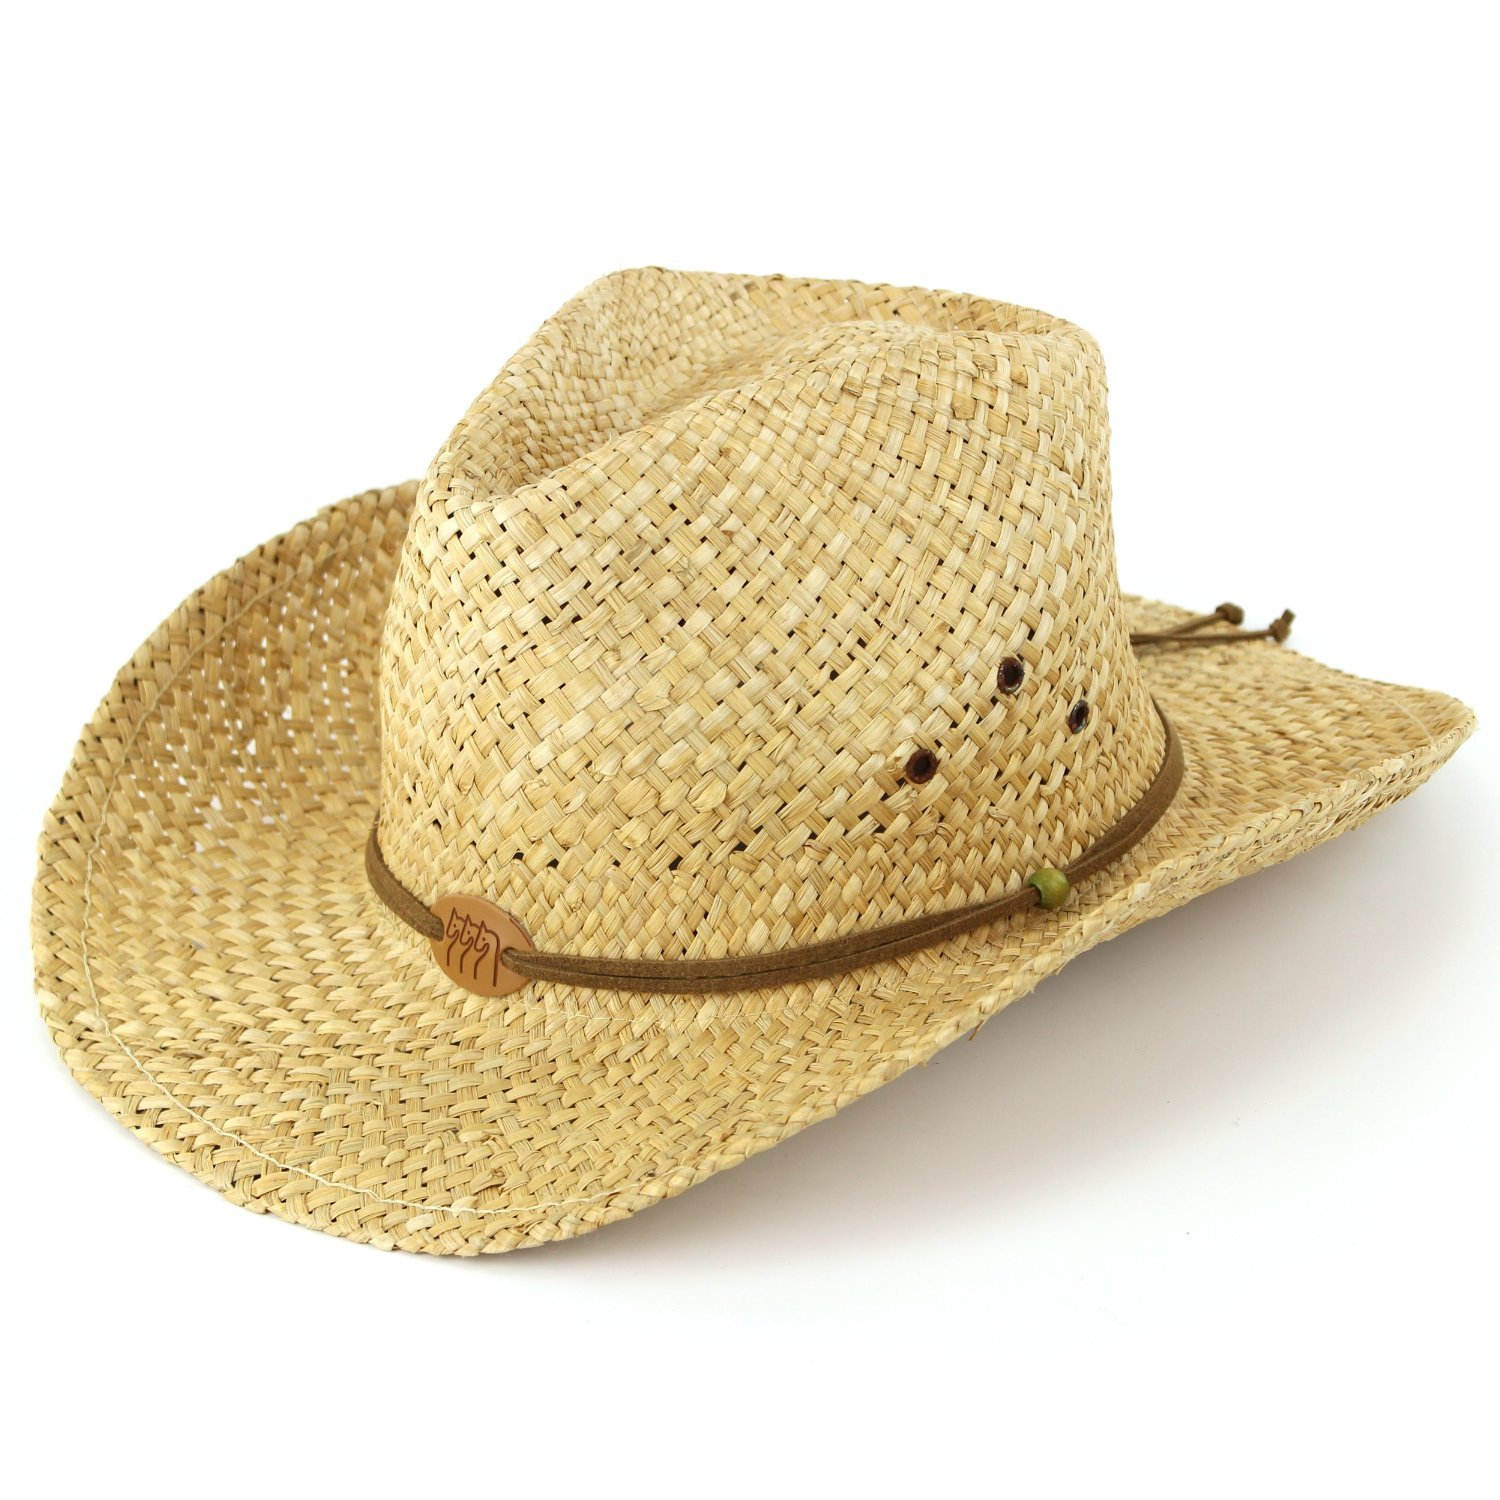 47894c89989 Straw cowboy hat with leather band detail and three horses badge. Natural